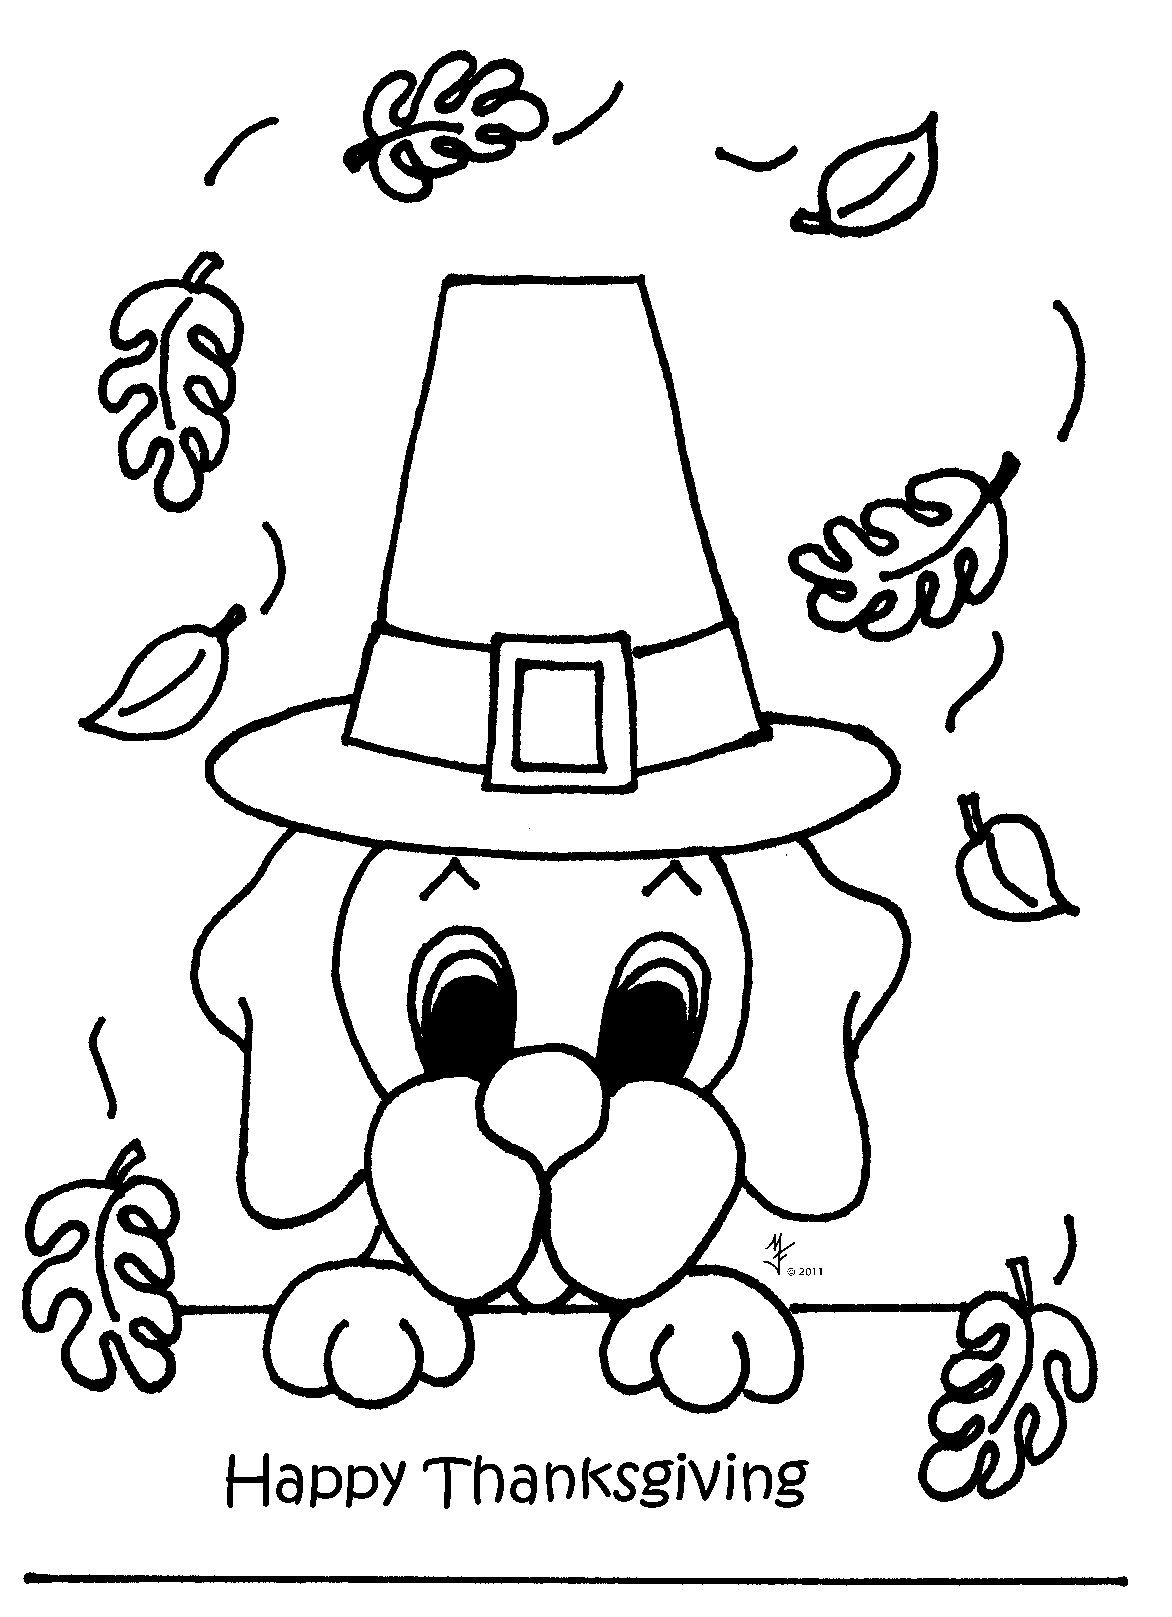 nice November Coloring Pages | FillColoringPages.com | Mcoloring ...